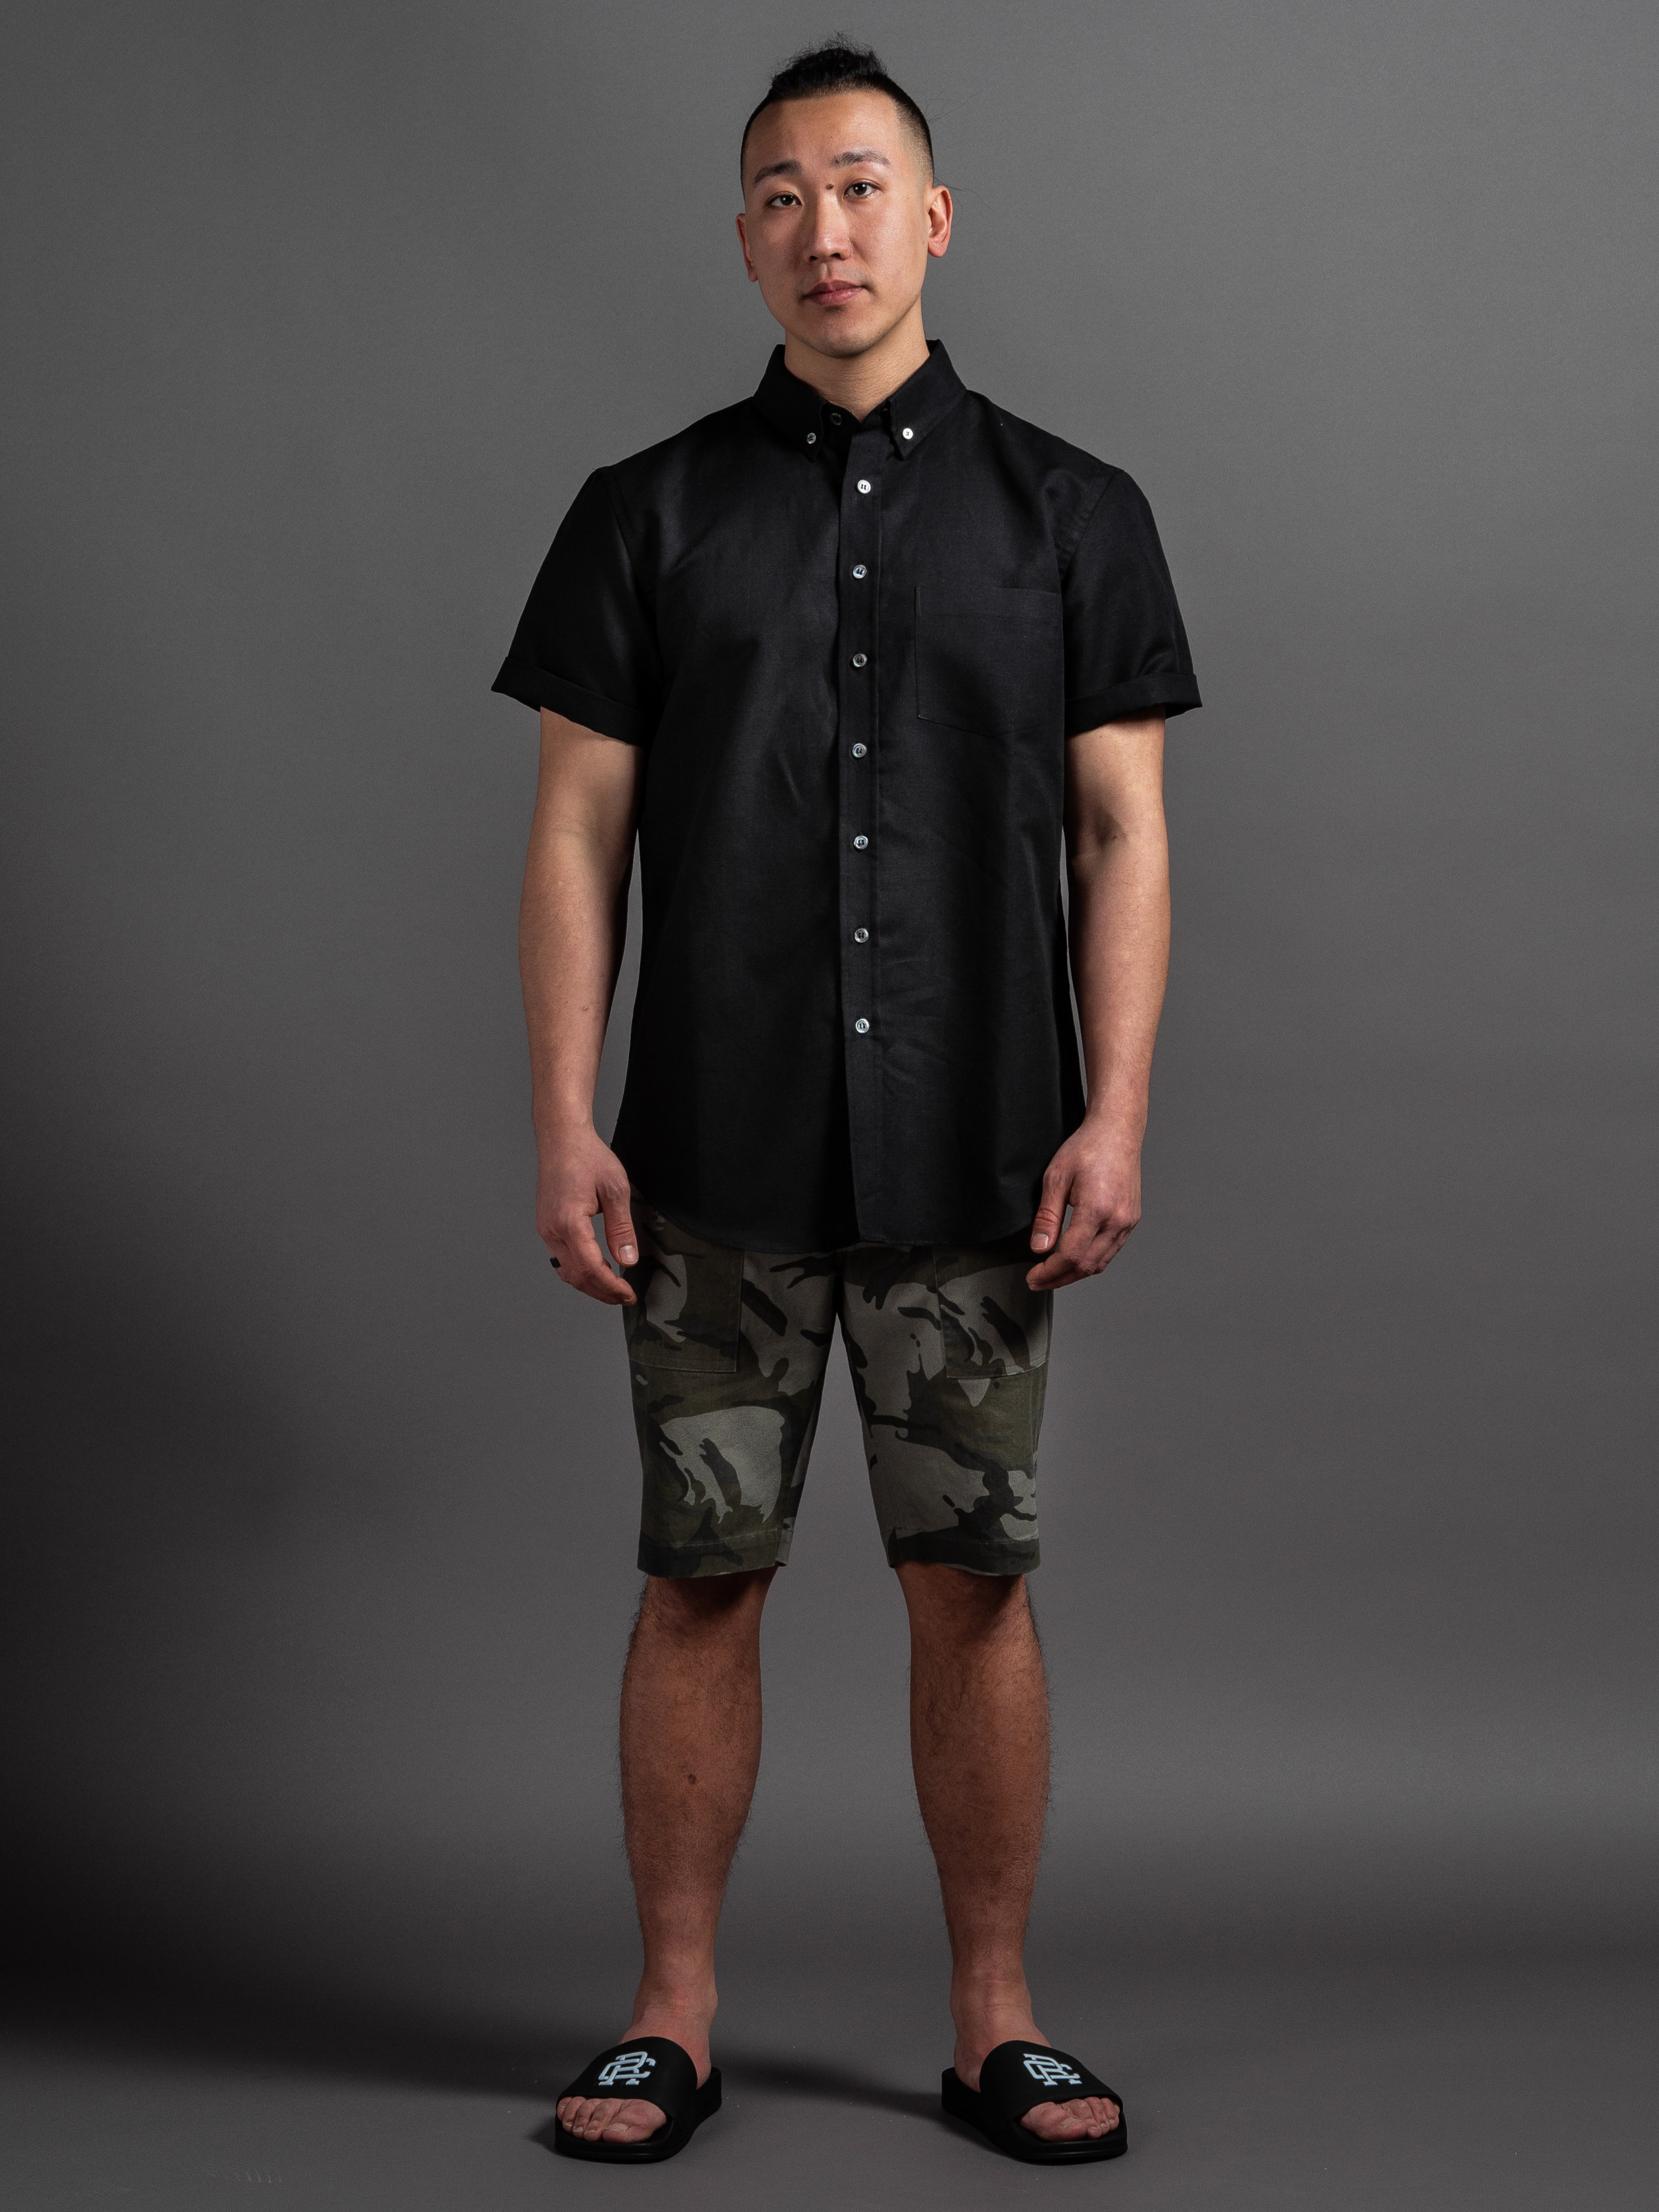 Outclass Linen Short Sleeve  Outclass Camouflage Safari Shorts  Reigning Champ Slides    SHOP THIS LOOK